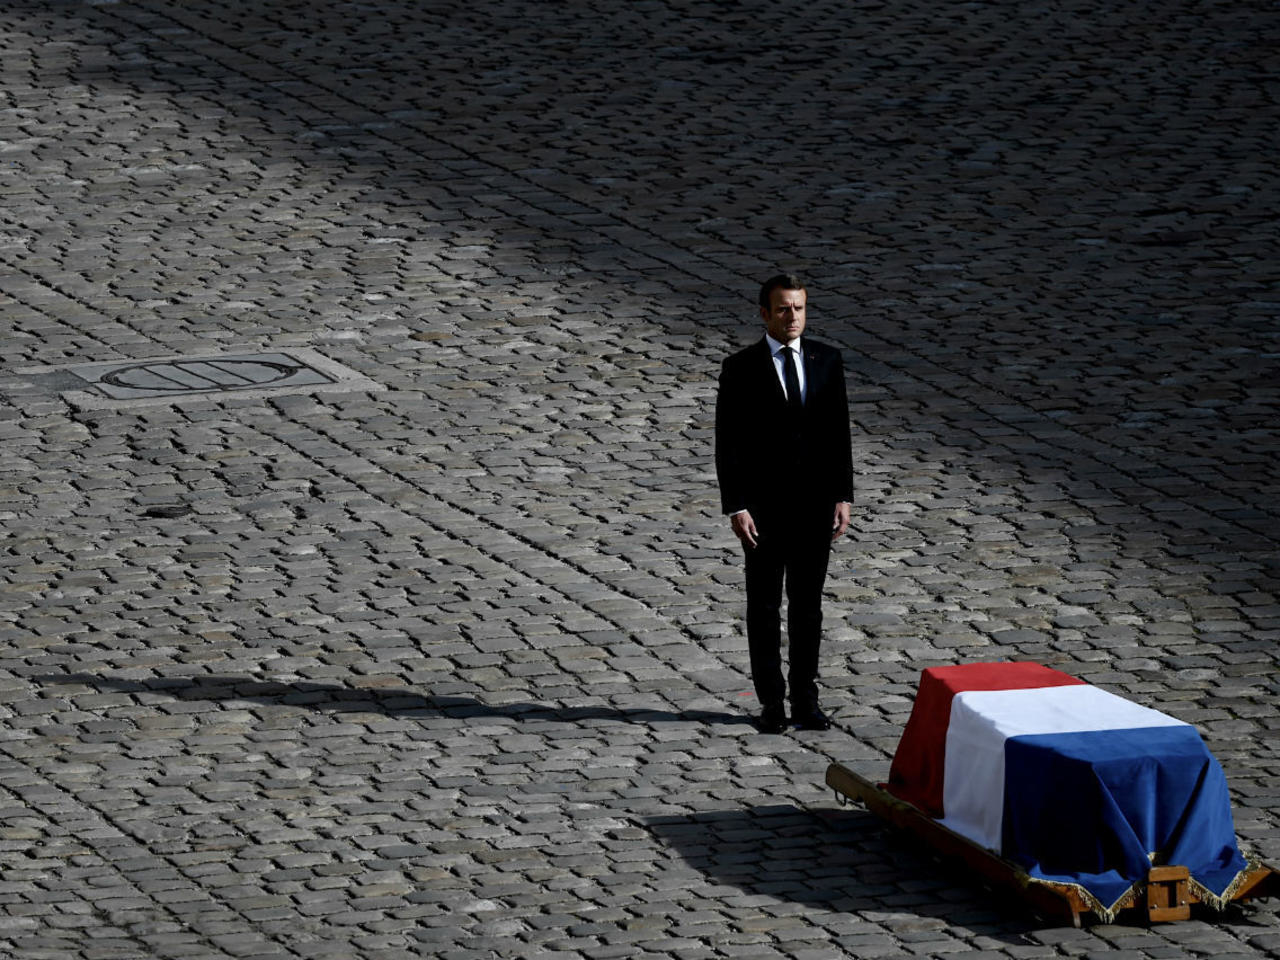 France declares national day of mourning for late president Valery Giscard d'Estaing